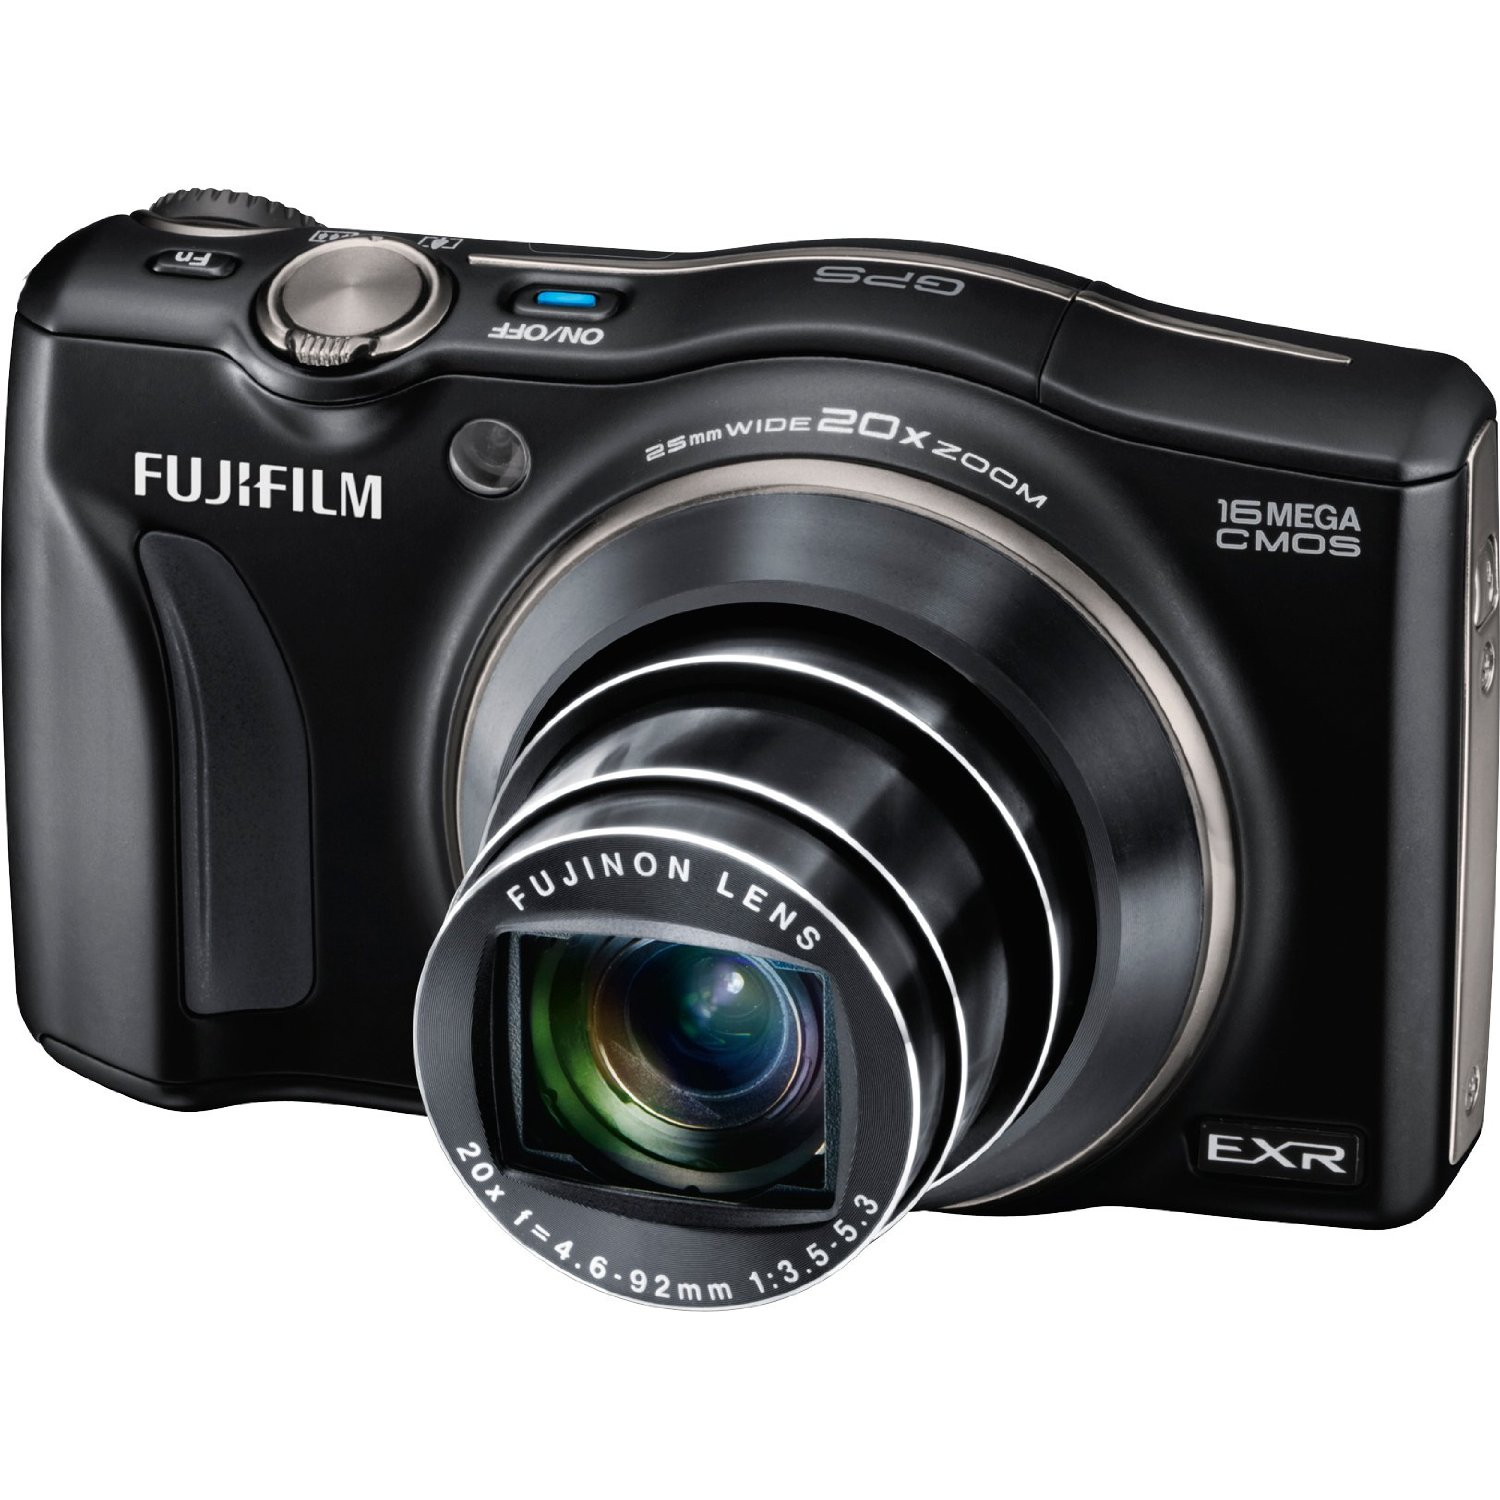 Fuji Fuji Buy Fujifilm Finepix F770exr Digital Camera Fujifilm